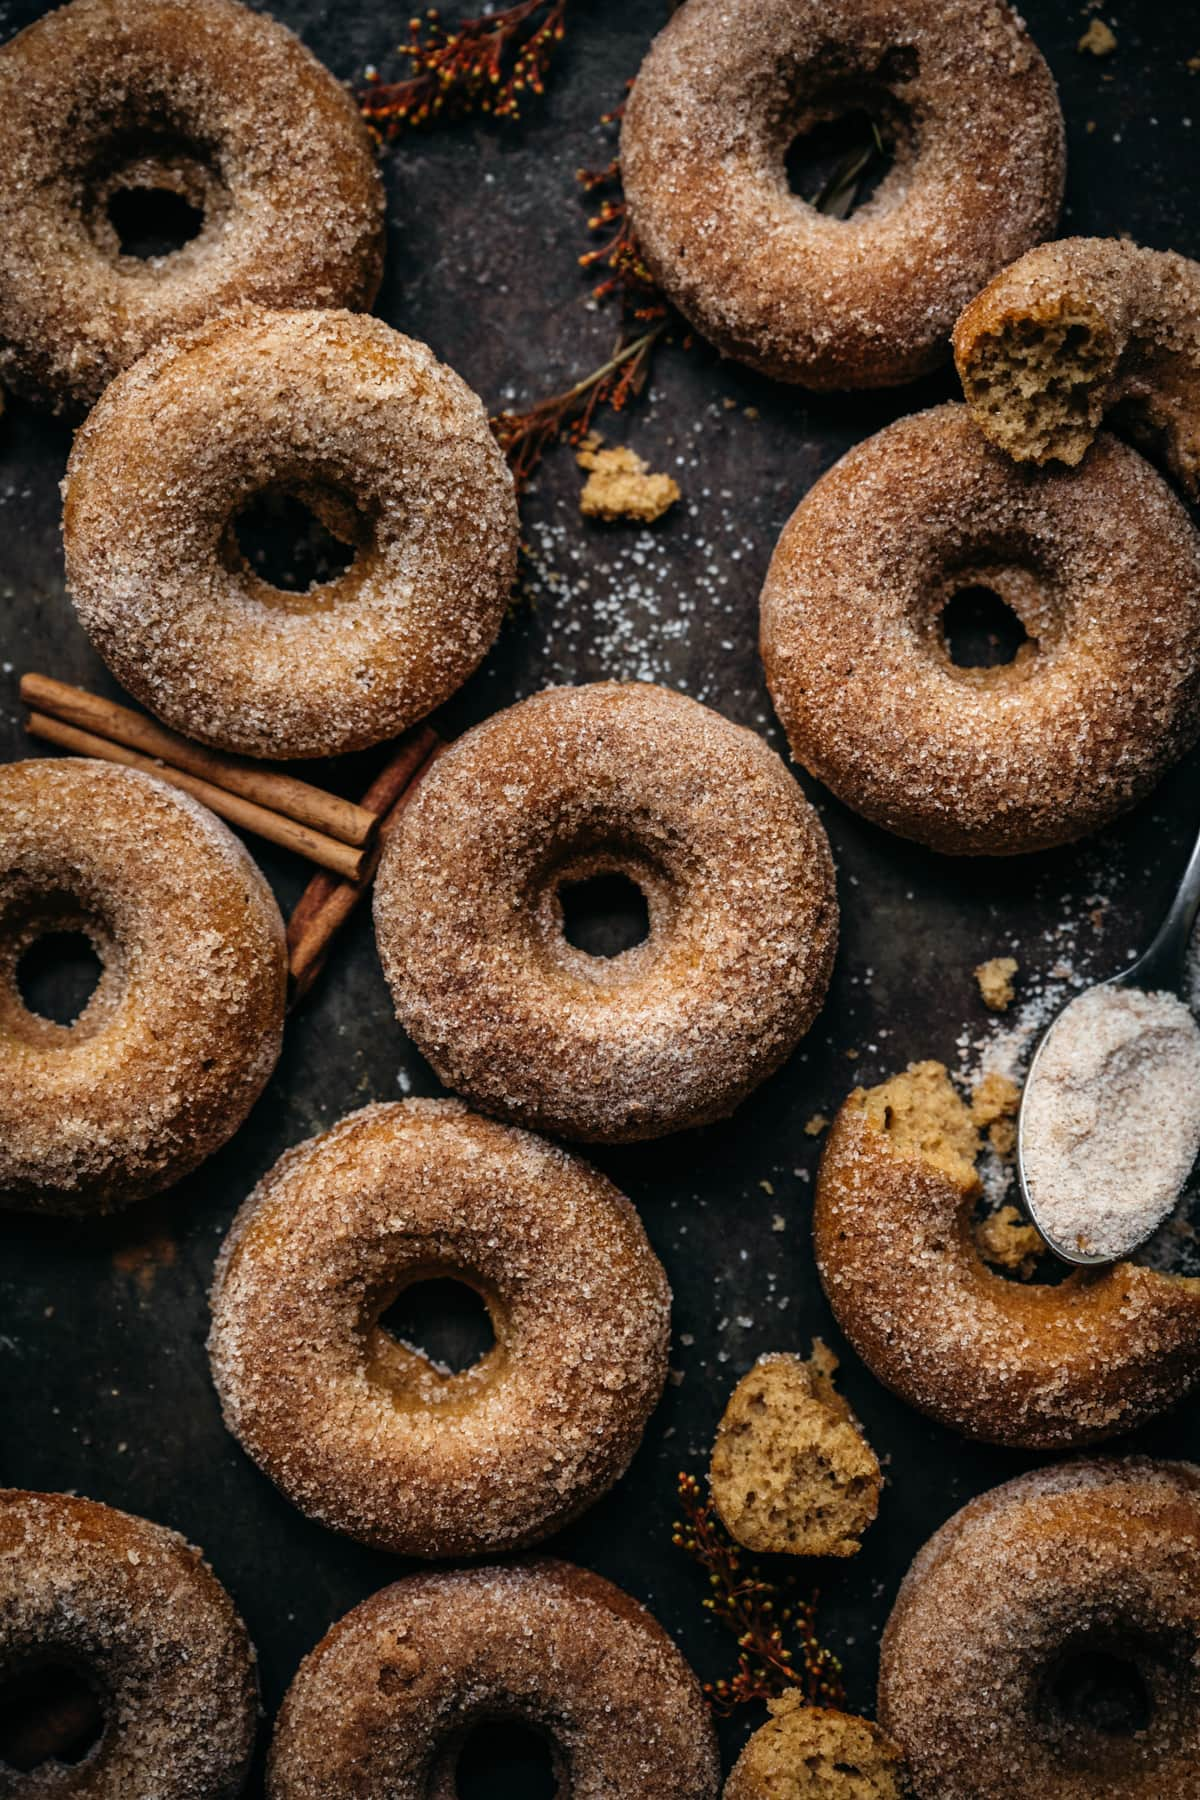 overhead view of vegan baked apple cider donuts with cinnamon sugar coating on a sheet pan.